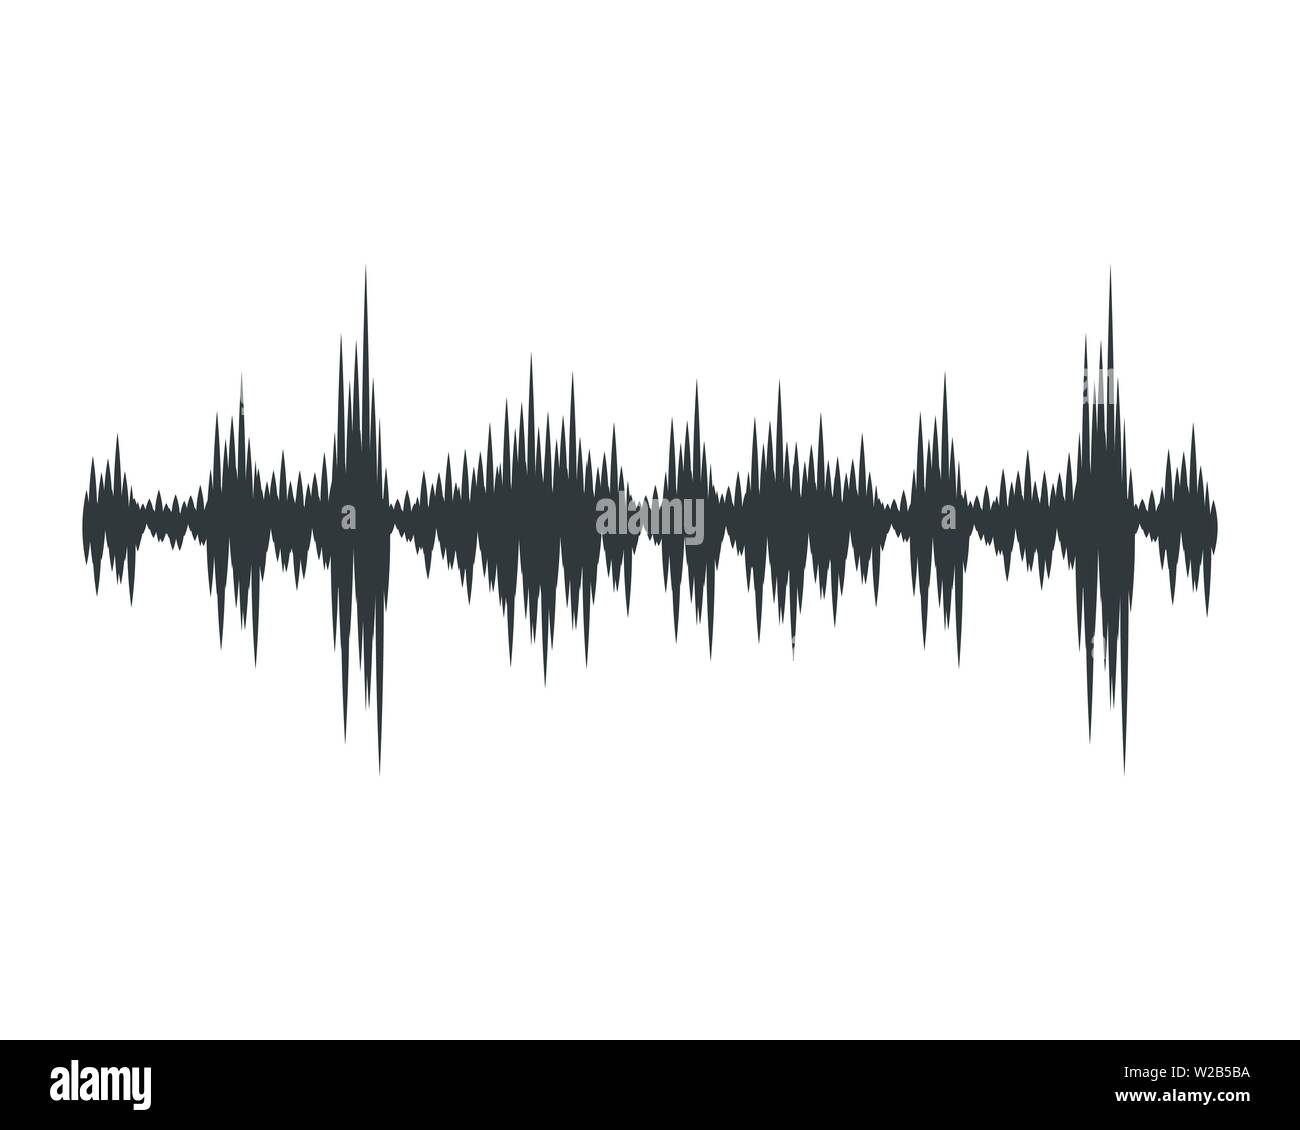 Sound waves vector illustration design template Stock Vector